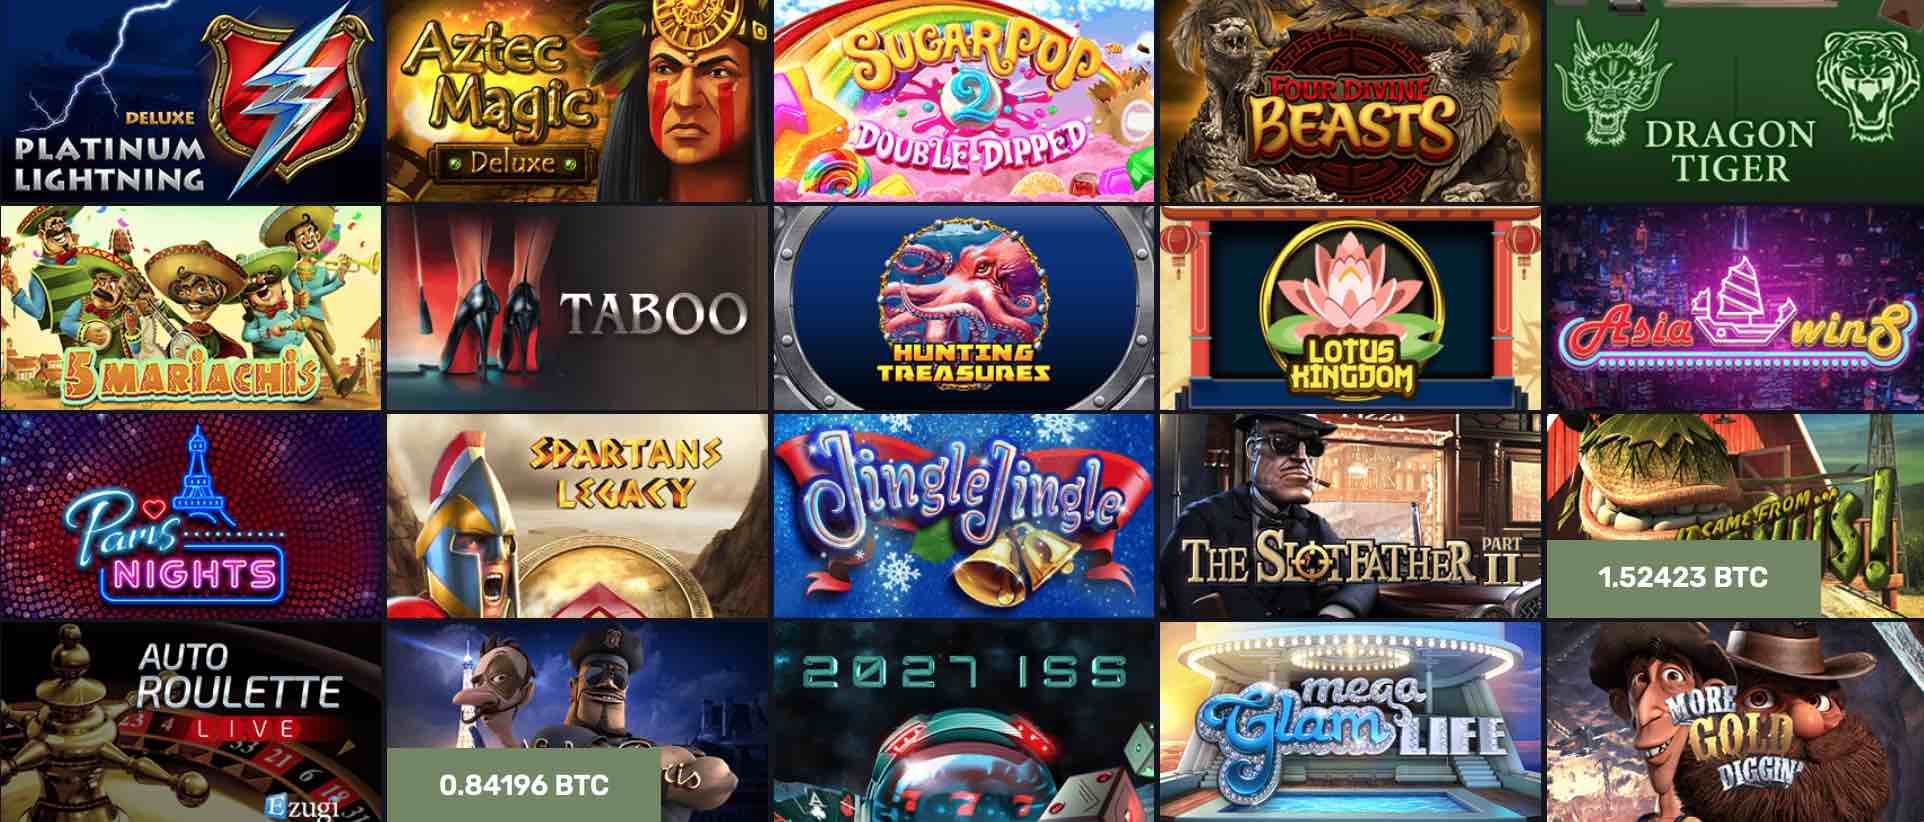 How to win in slot machines in casinos